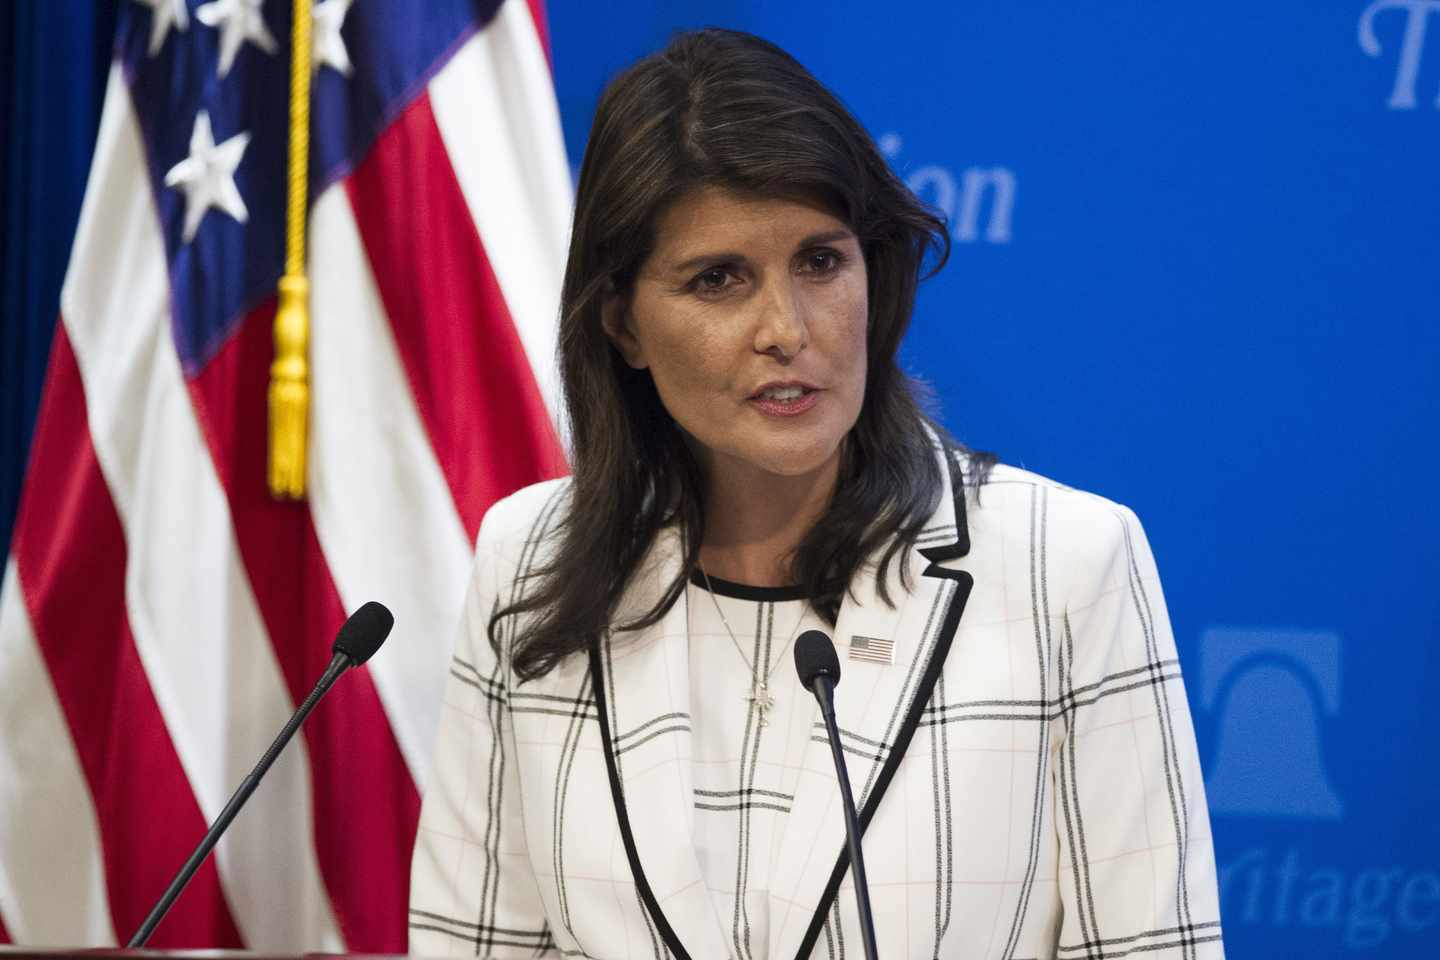 Haley Taps Key Conservative, Fueling 2024 Speculation